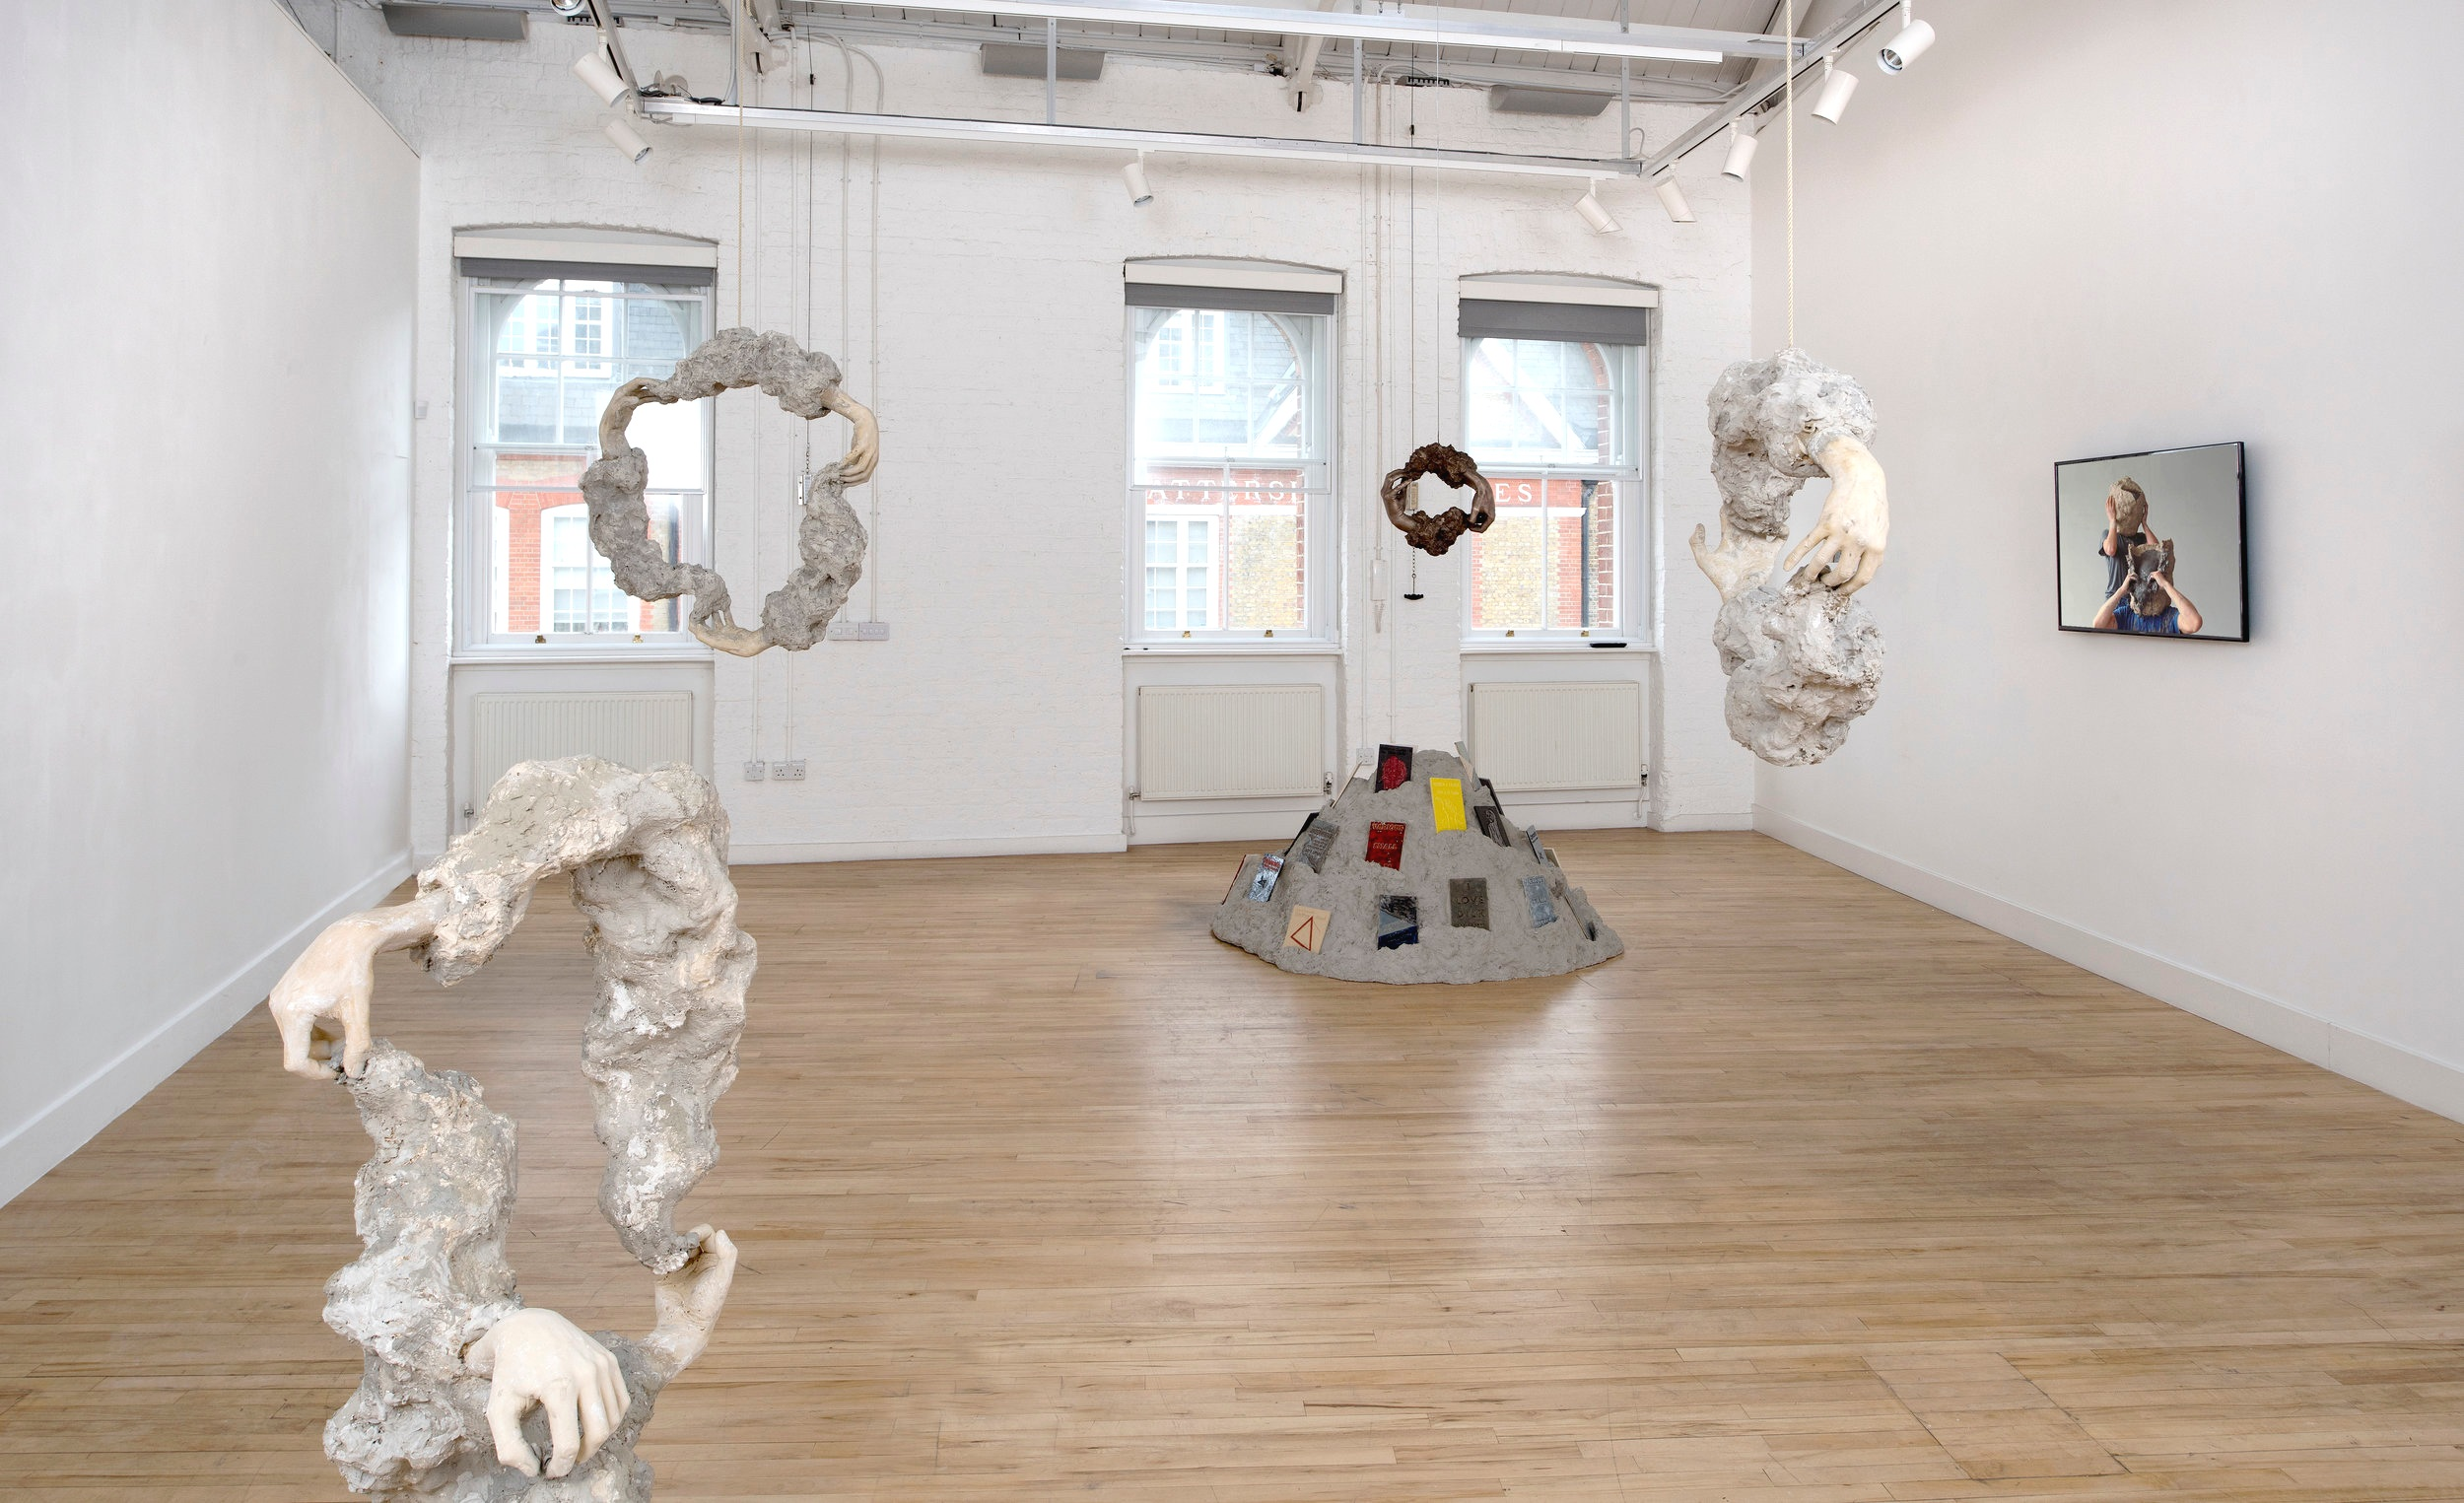 Installation view:  Haptic Loop  by William Cobbing at Cooke Latham Gallery